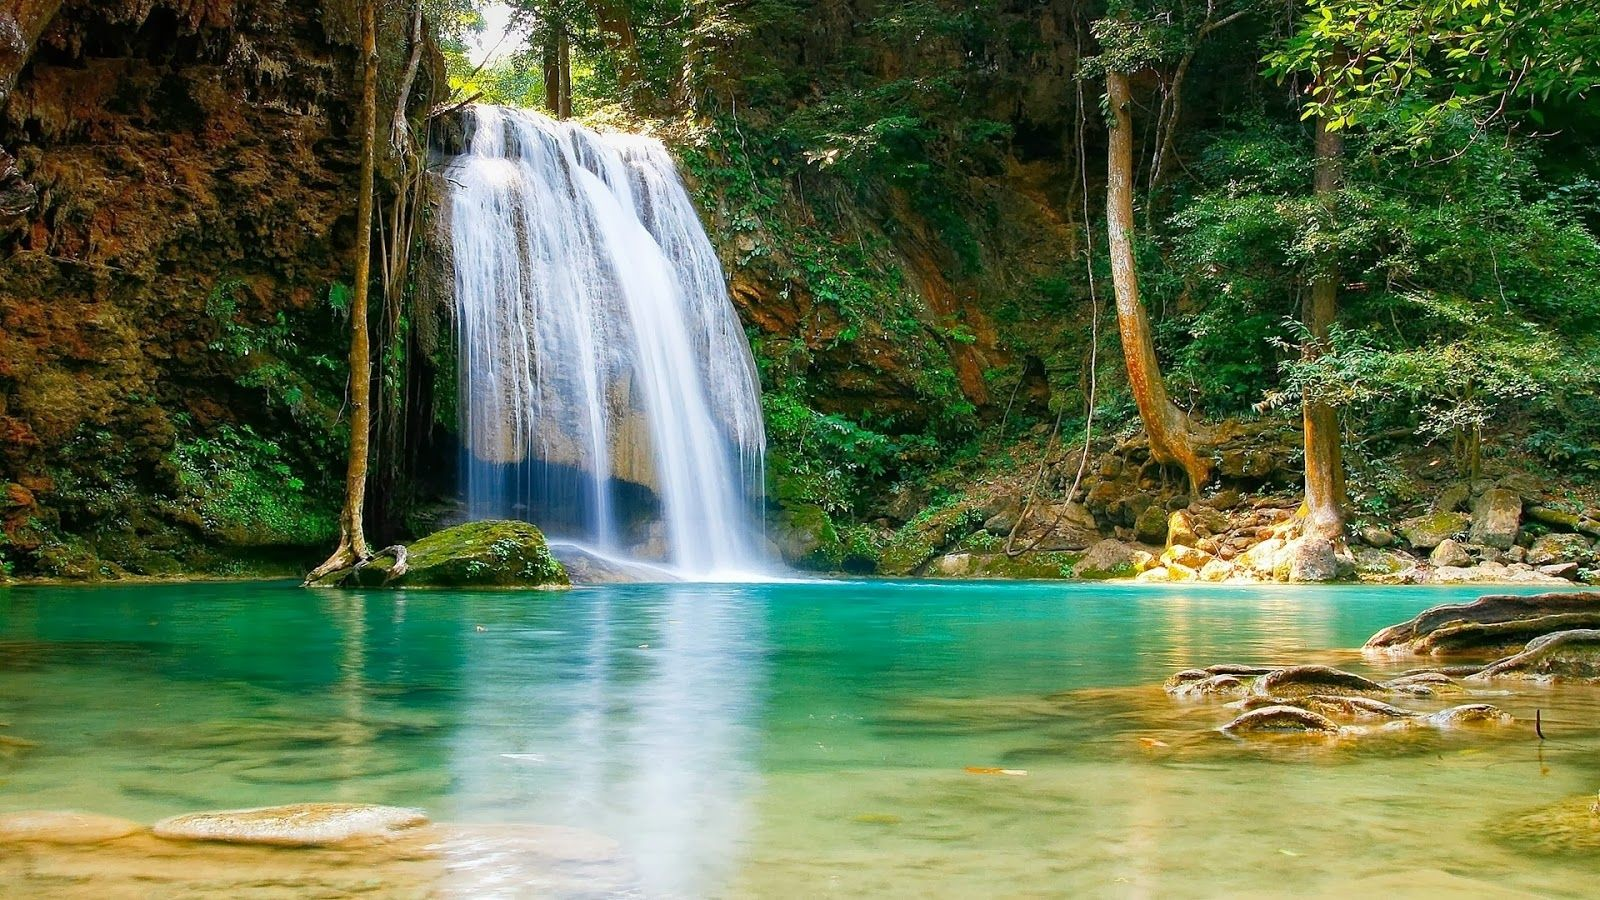 Nature Images Free Download For Pc Background 1 Hd Wallpapers Waterfall Wallpaper Waterfall Pictures Hd Nature Wallpapers